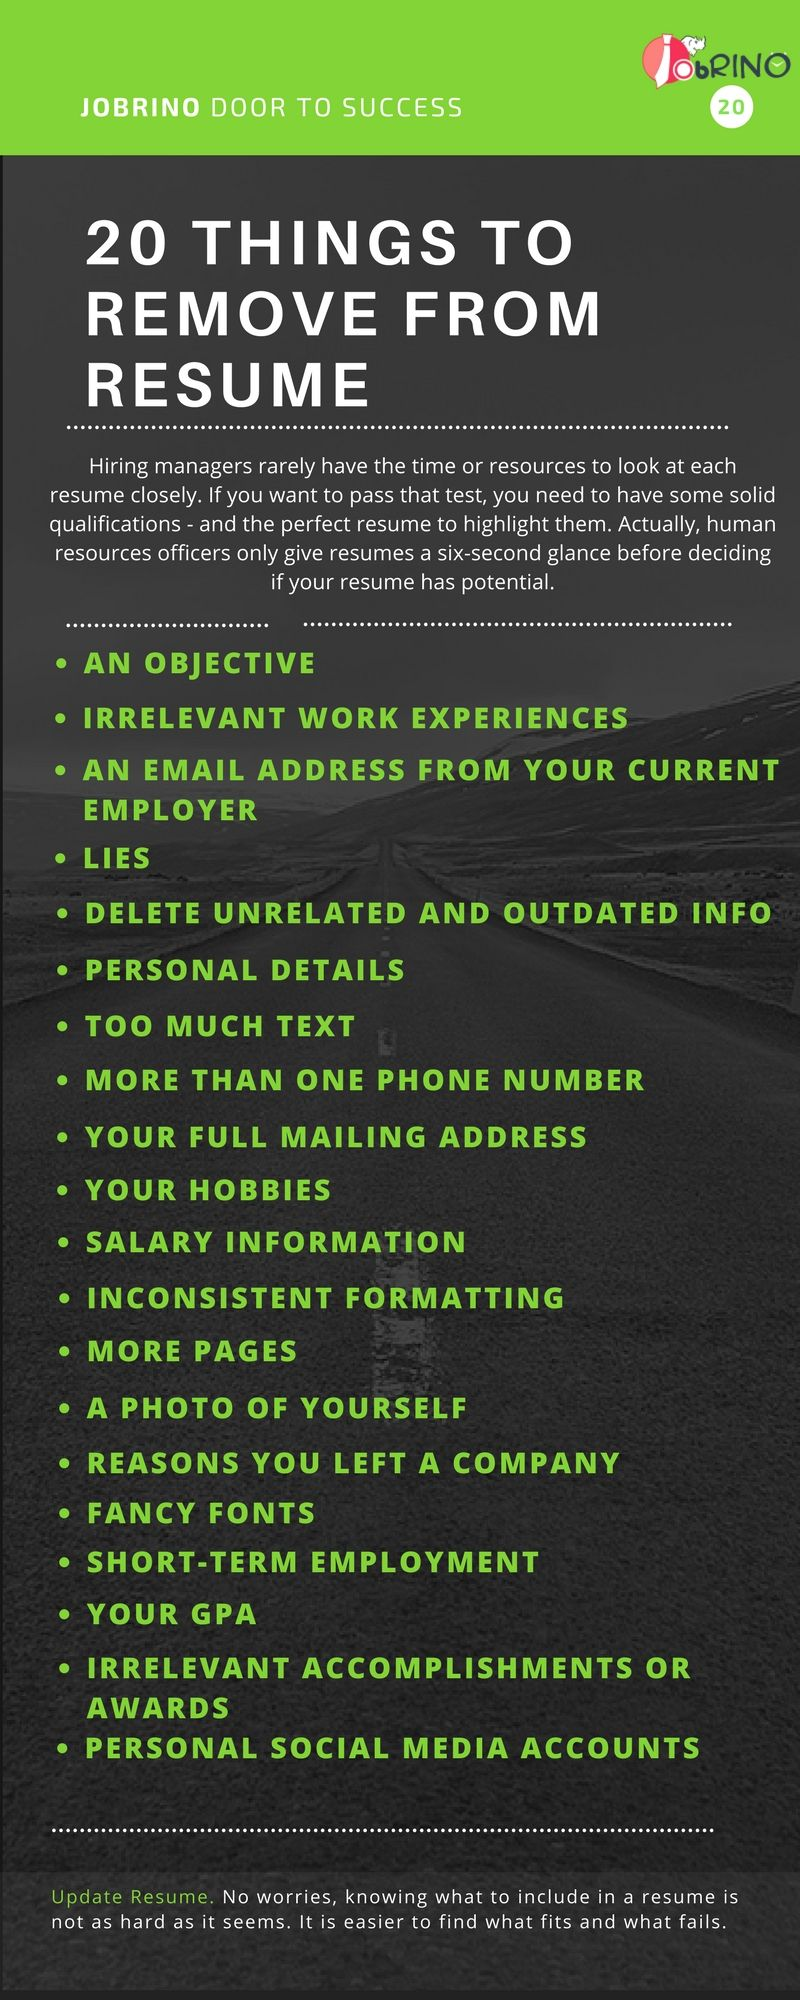 How to Write an Effective Resume to Find a Job   Pinterest     20 Things to remove from the  resume   Here are some essential points to be